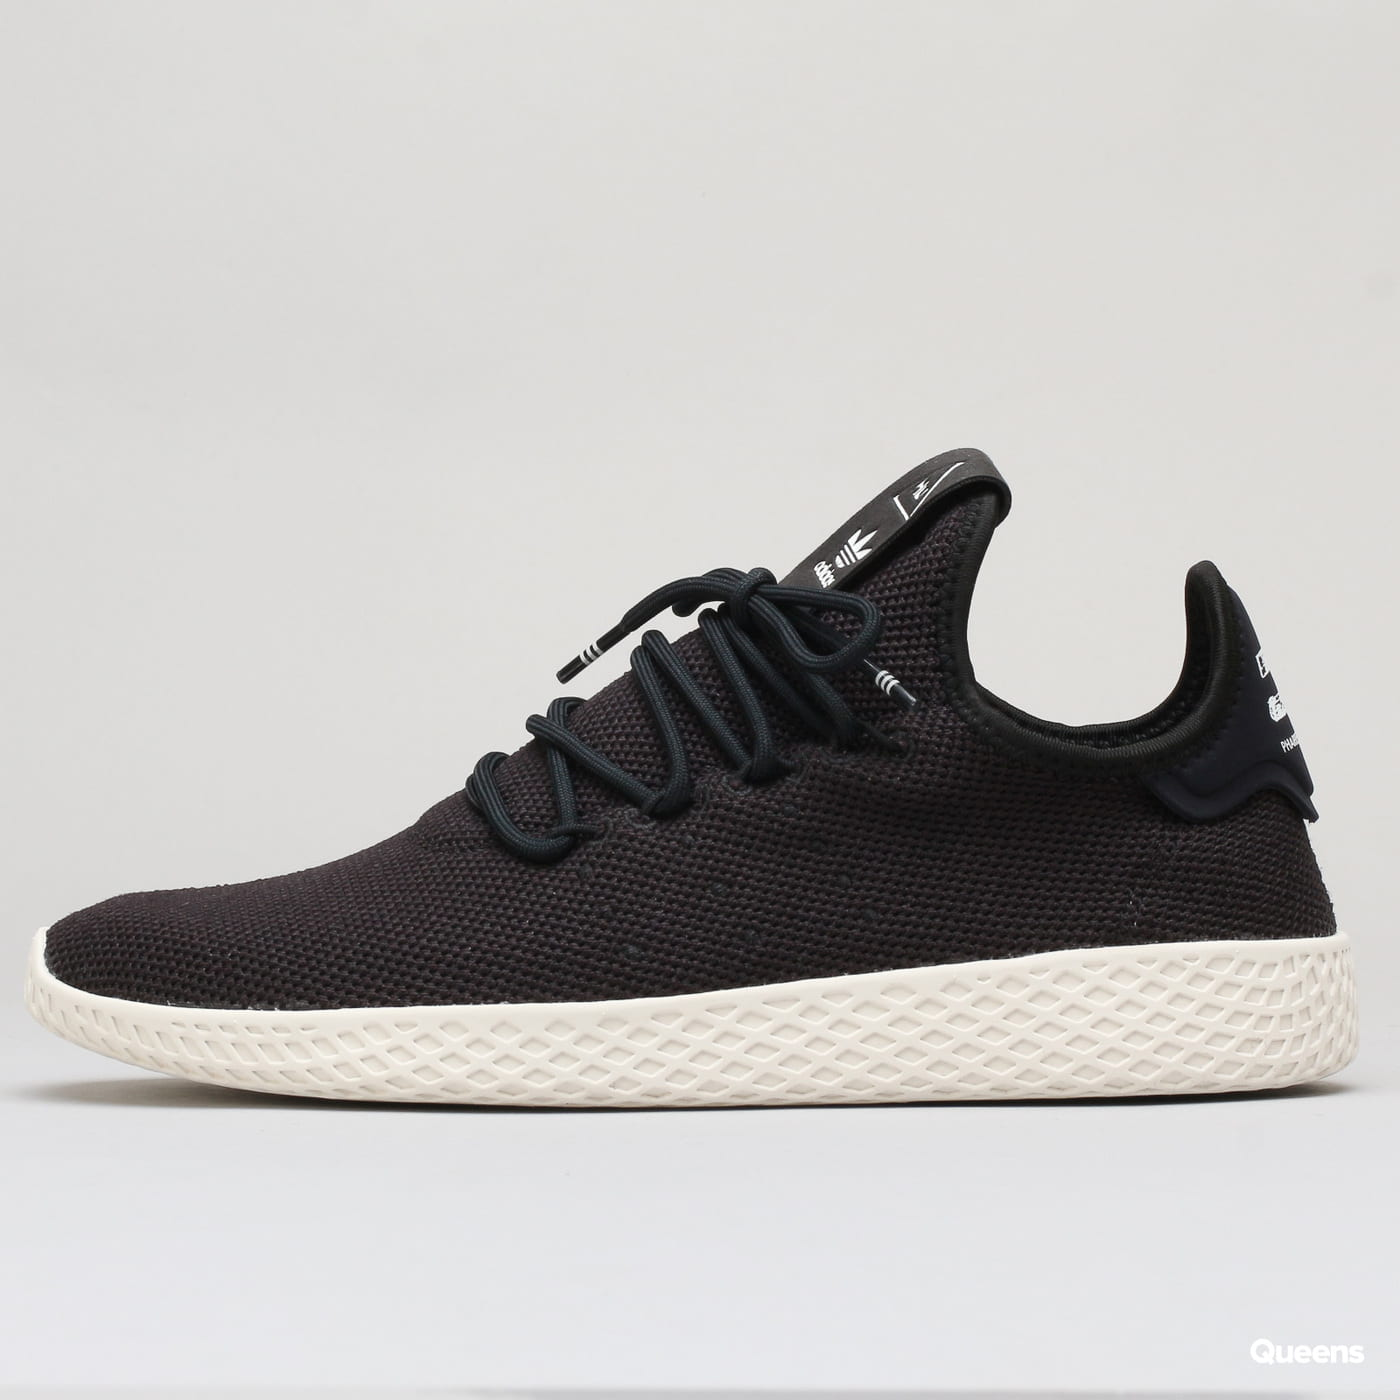 adidas Originals Pharrell Williams Tennis HU cblack / cblack / cwhite